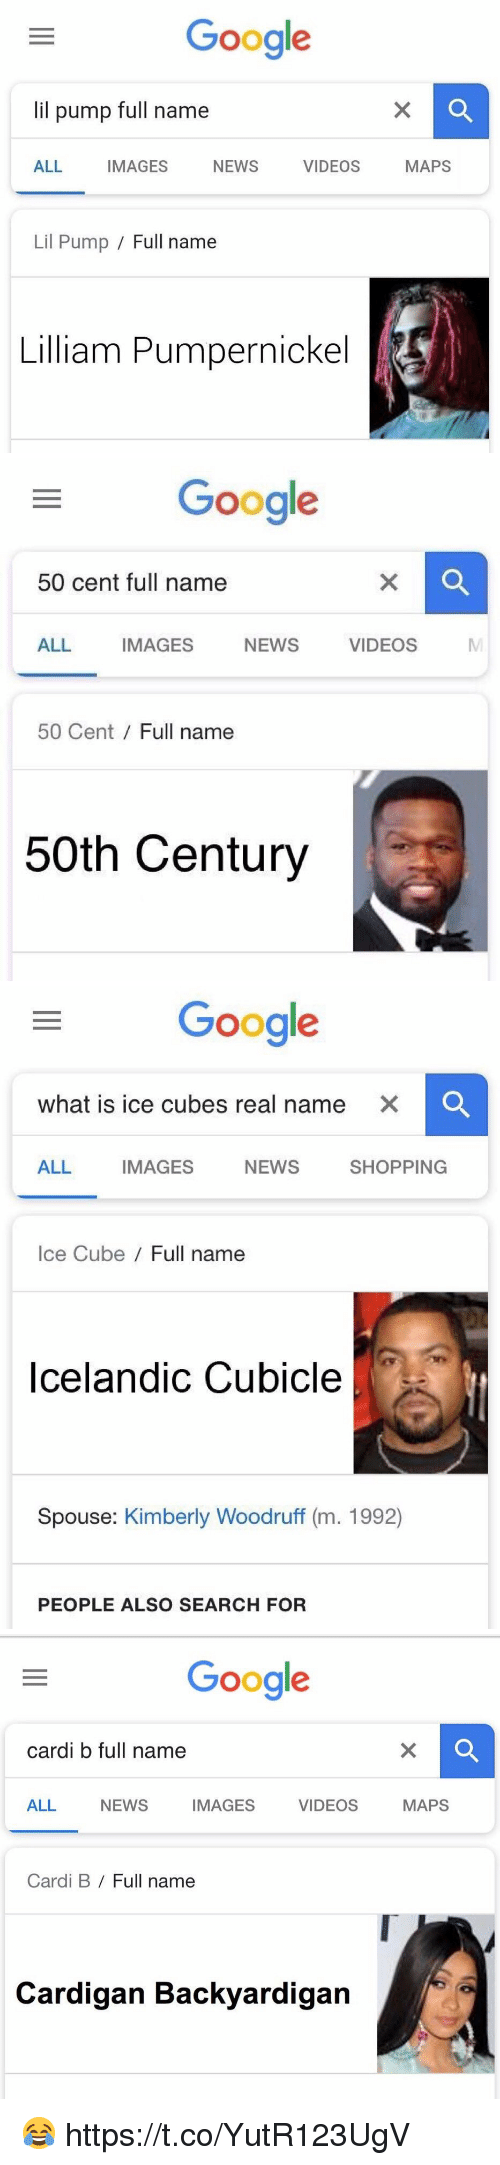 Ice Cubes: Google  lil pump full name  ALL IMAGES NEWS VIDEOS MAPS  Lil Pump / Full name  Lilliam Pumpernickel   Google  50 cent full name  ALL IMAGES NEWS VIDEOS  MI  50 Cent Full name  50th Century   Google  what is ice cubes real name  XC  ALL IMAGES NEWS SHOPPING  Ice Cube/ Full name  Icelandic Cubicle  Spouse: Kimberly Woodruff (m. 1992)  PEOPLE ALSO SEARCH FOR   Google  cardi b full name  ALL NEWS IMAGES VIDEOS MAPS  Cardi B / Full name  Cardigan Backyardigan 😂 https://t.co/YutR123UgV